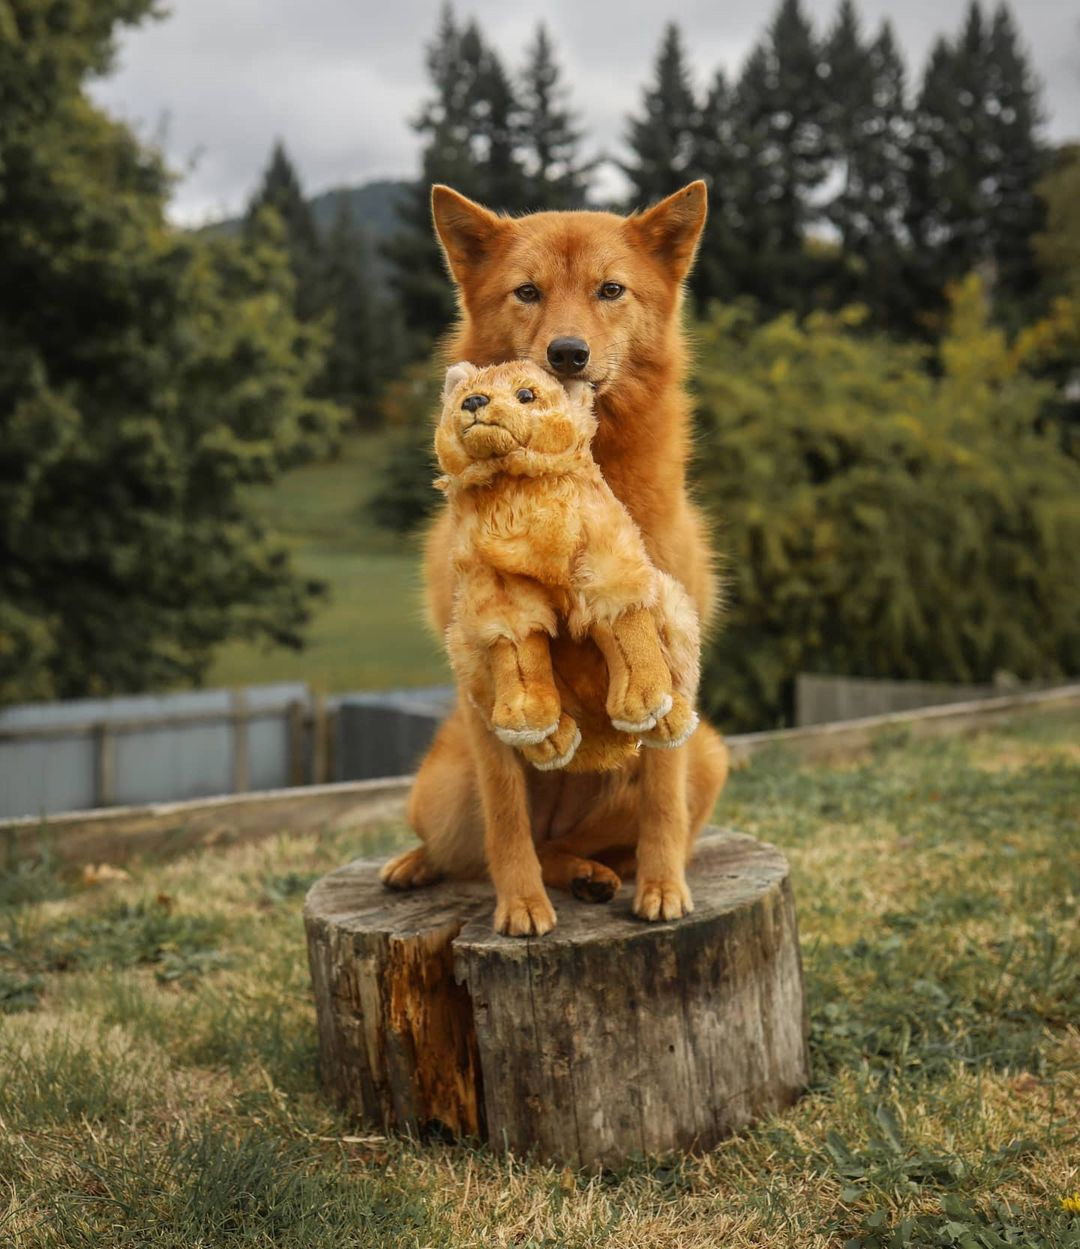 Tofu the Finnish Spitz dog poses for a photo with a favorite toy.